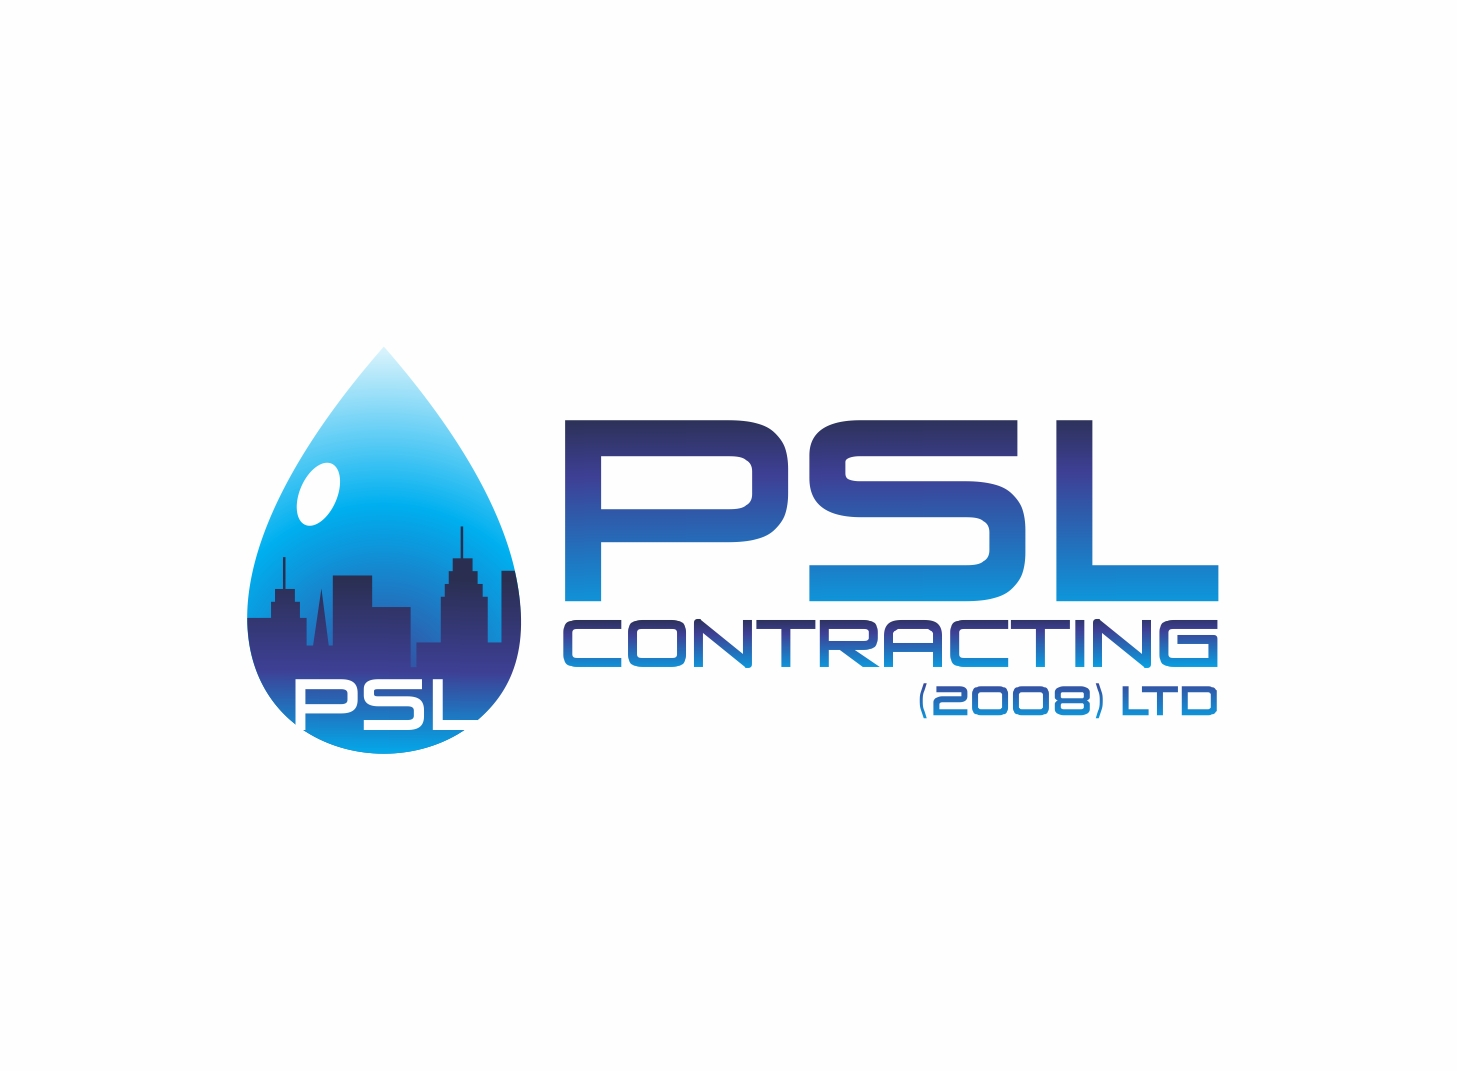 Logo Design by Zdravko Krulj - Entry No. 22 in the Logo Design Contest PSL Contracting (2008) Ltd. Logo Design.